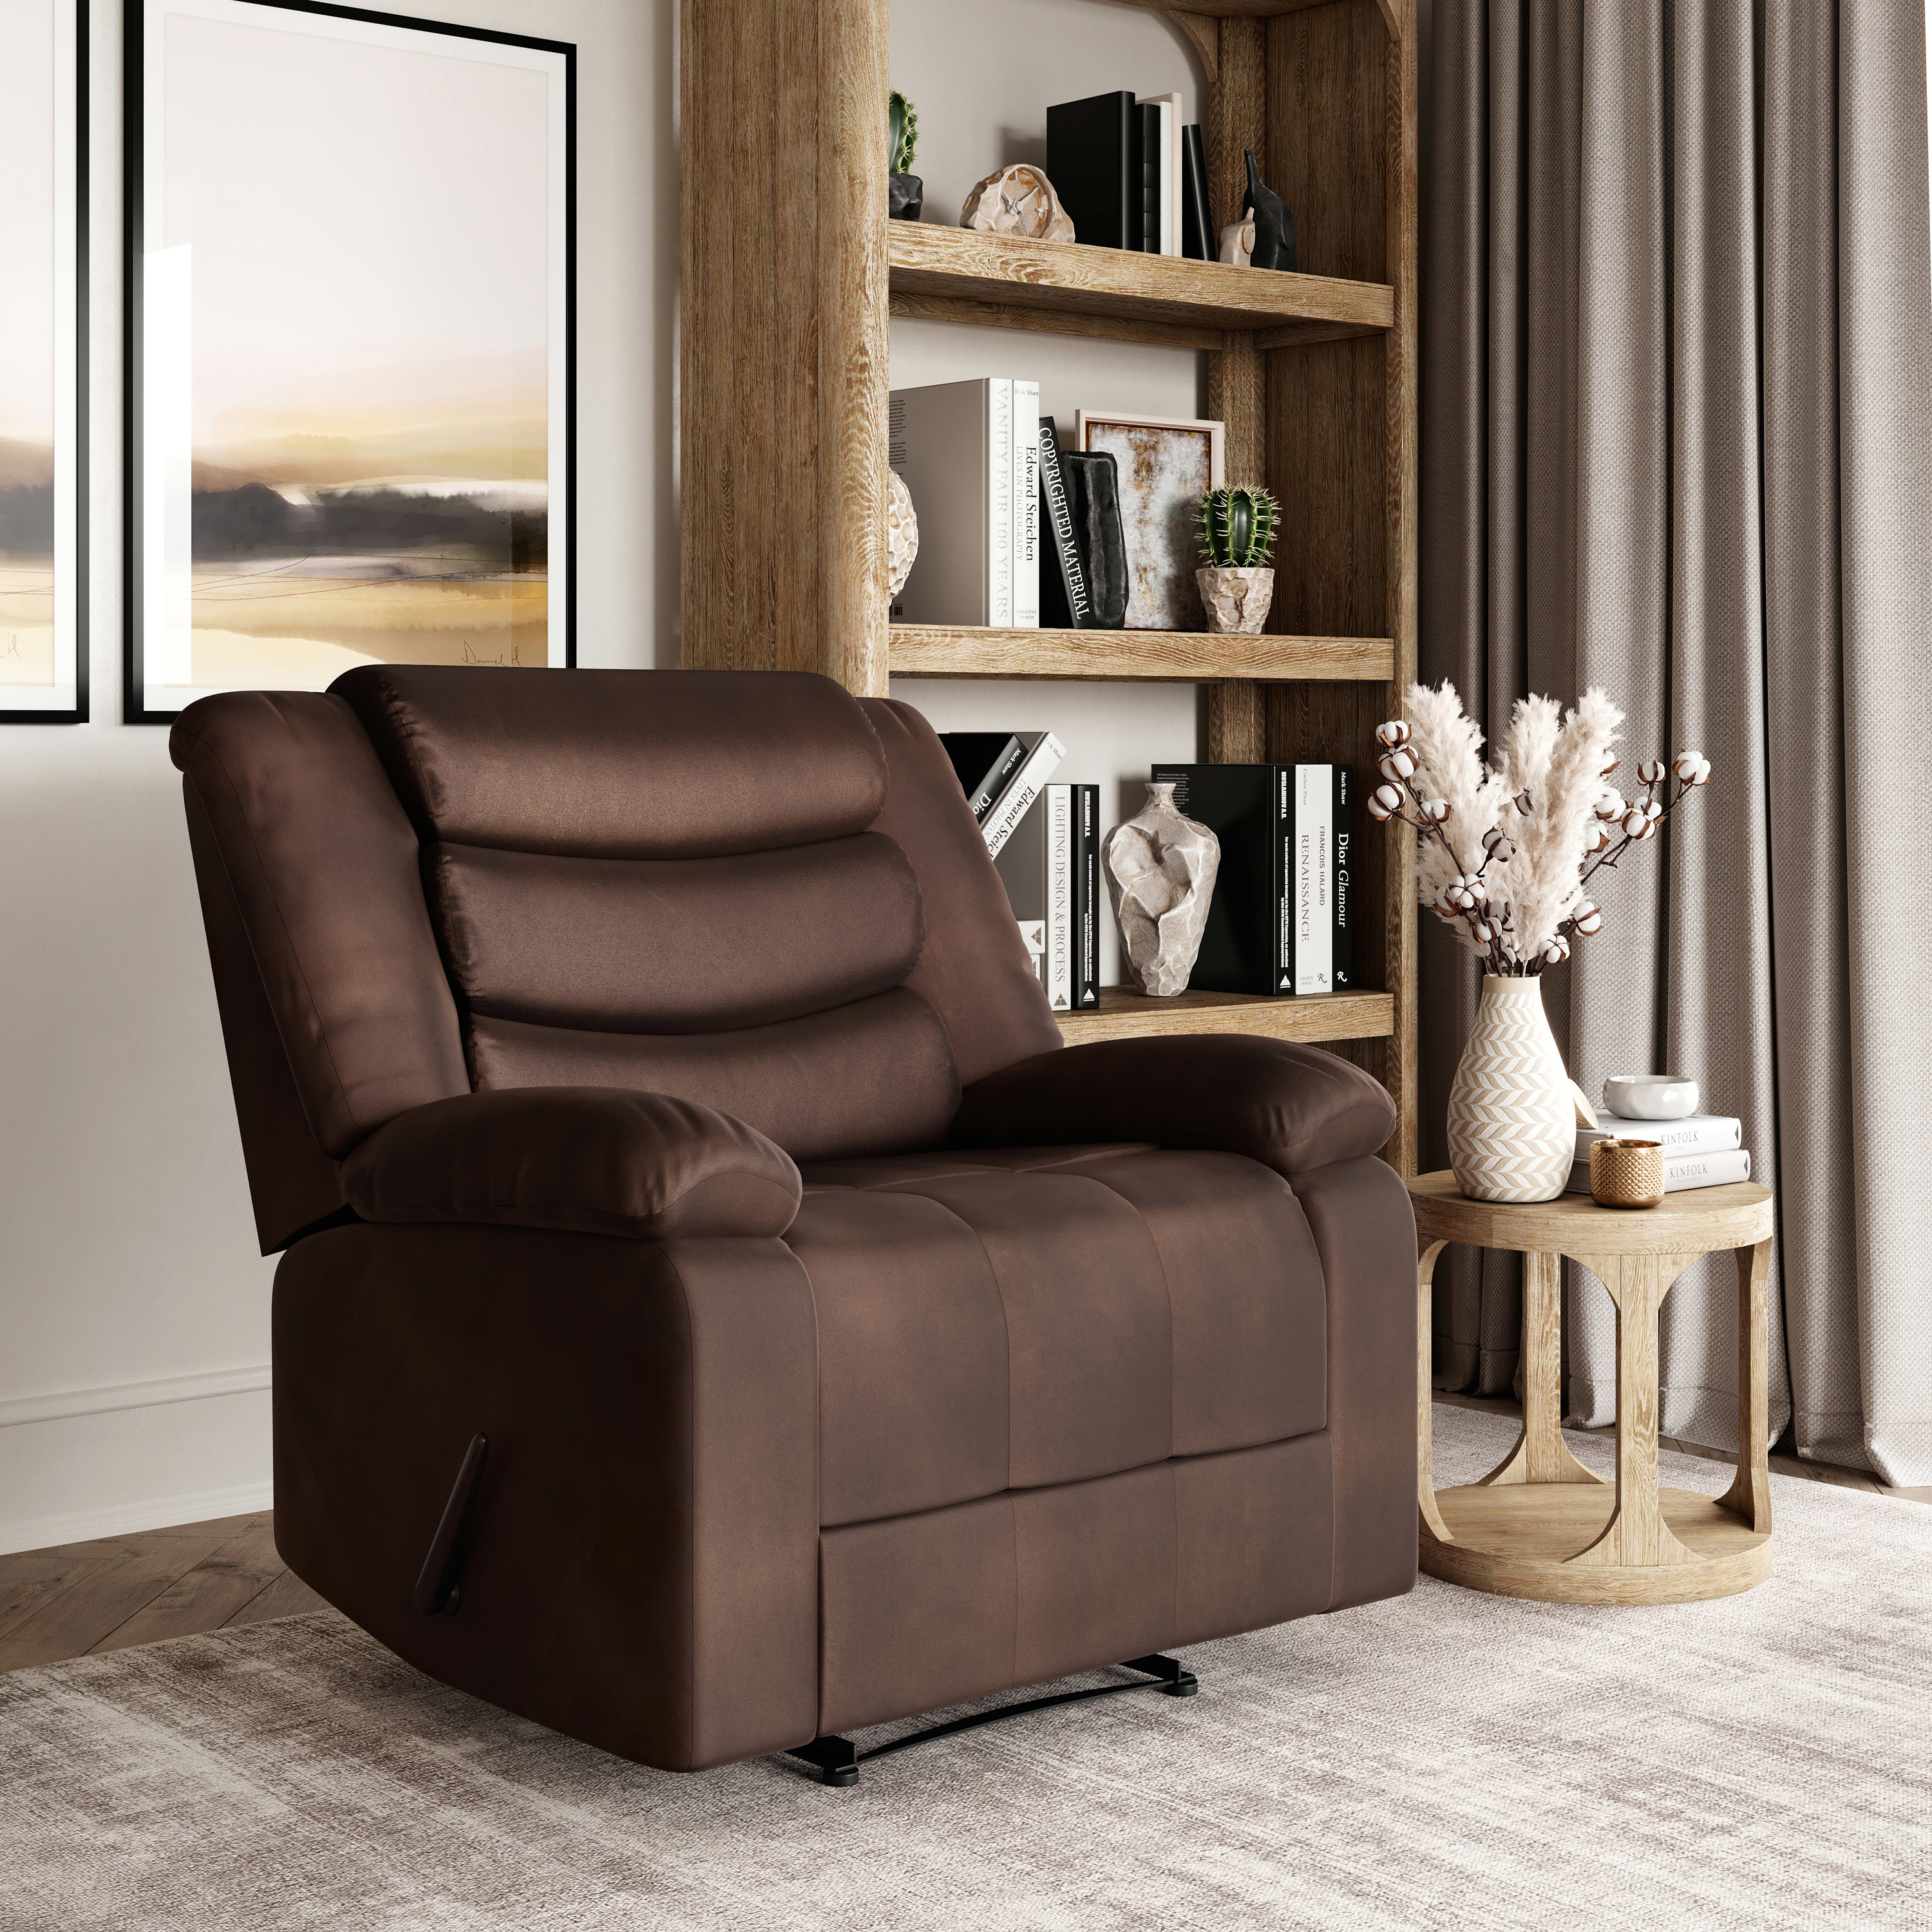 The brown recliner in a living room